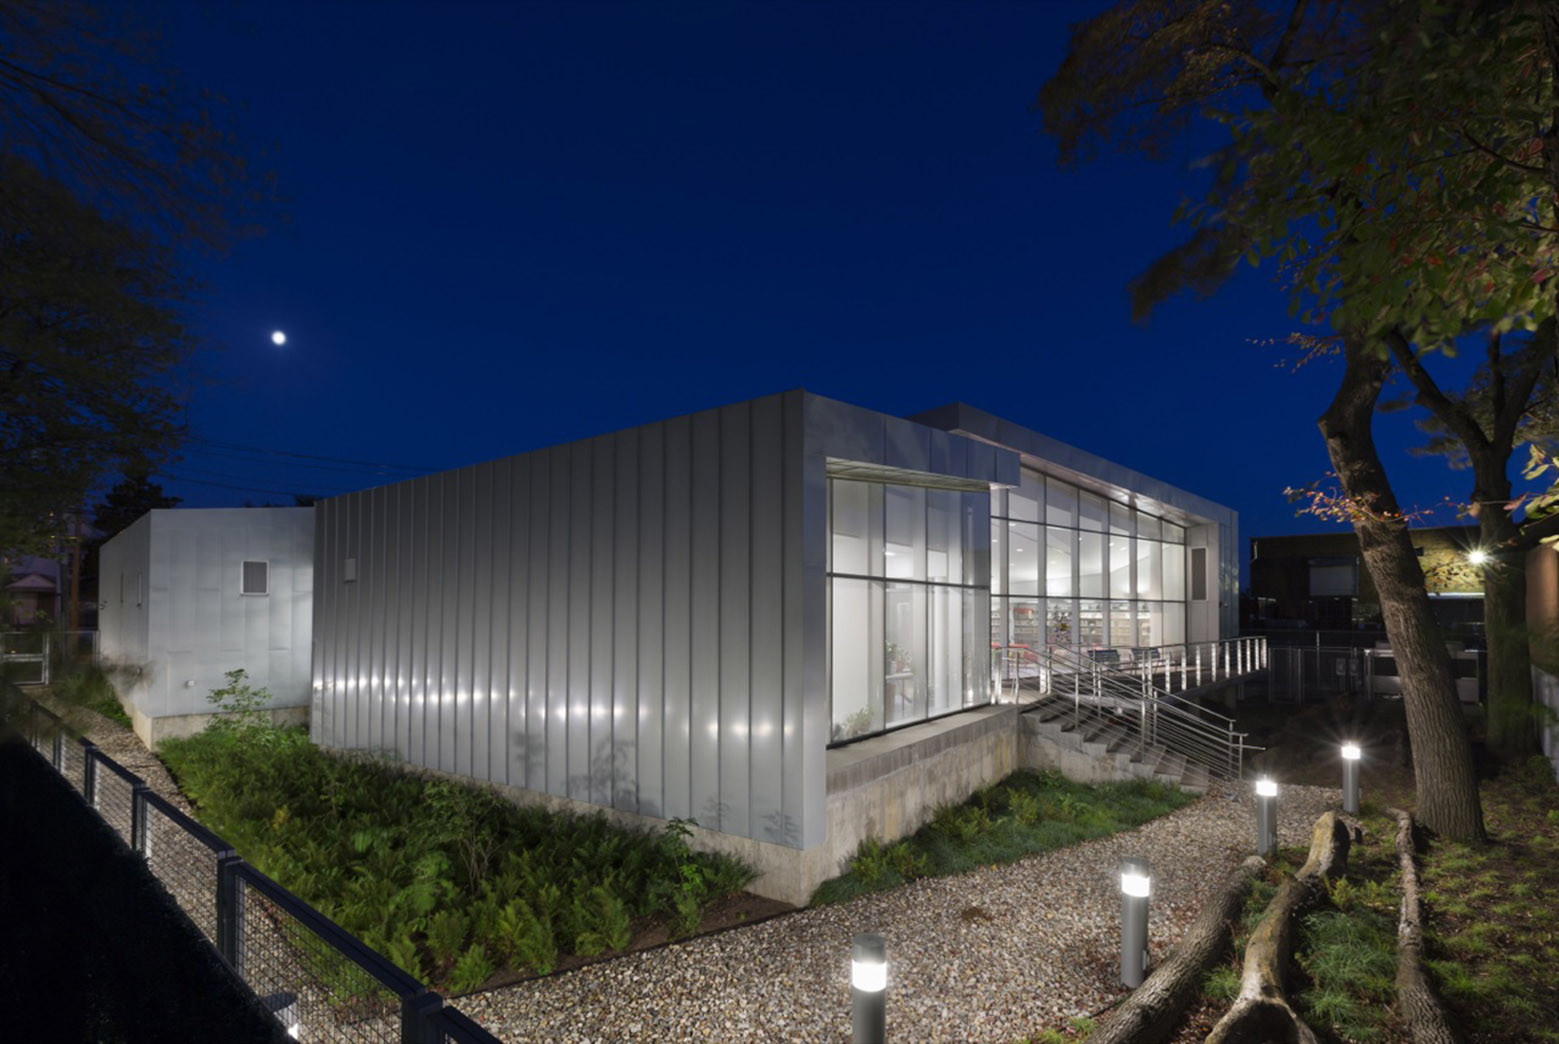 Gallery of Mariner Harbor Branch Library / A*PT ...